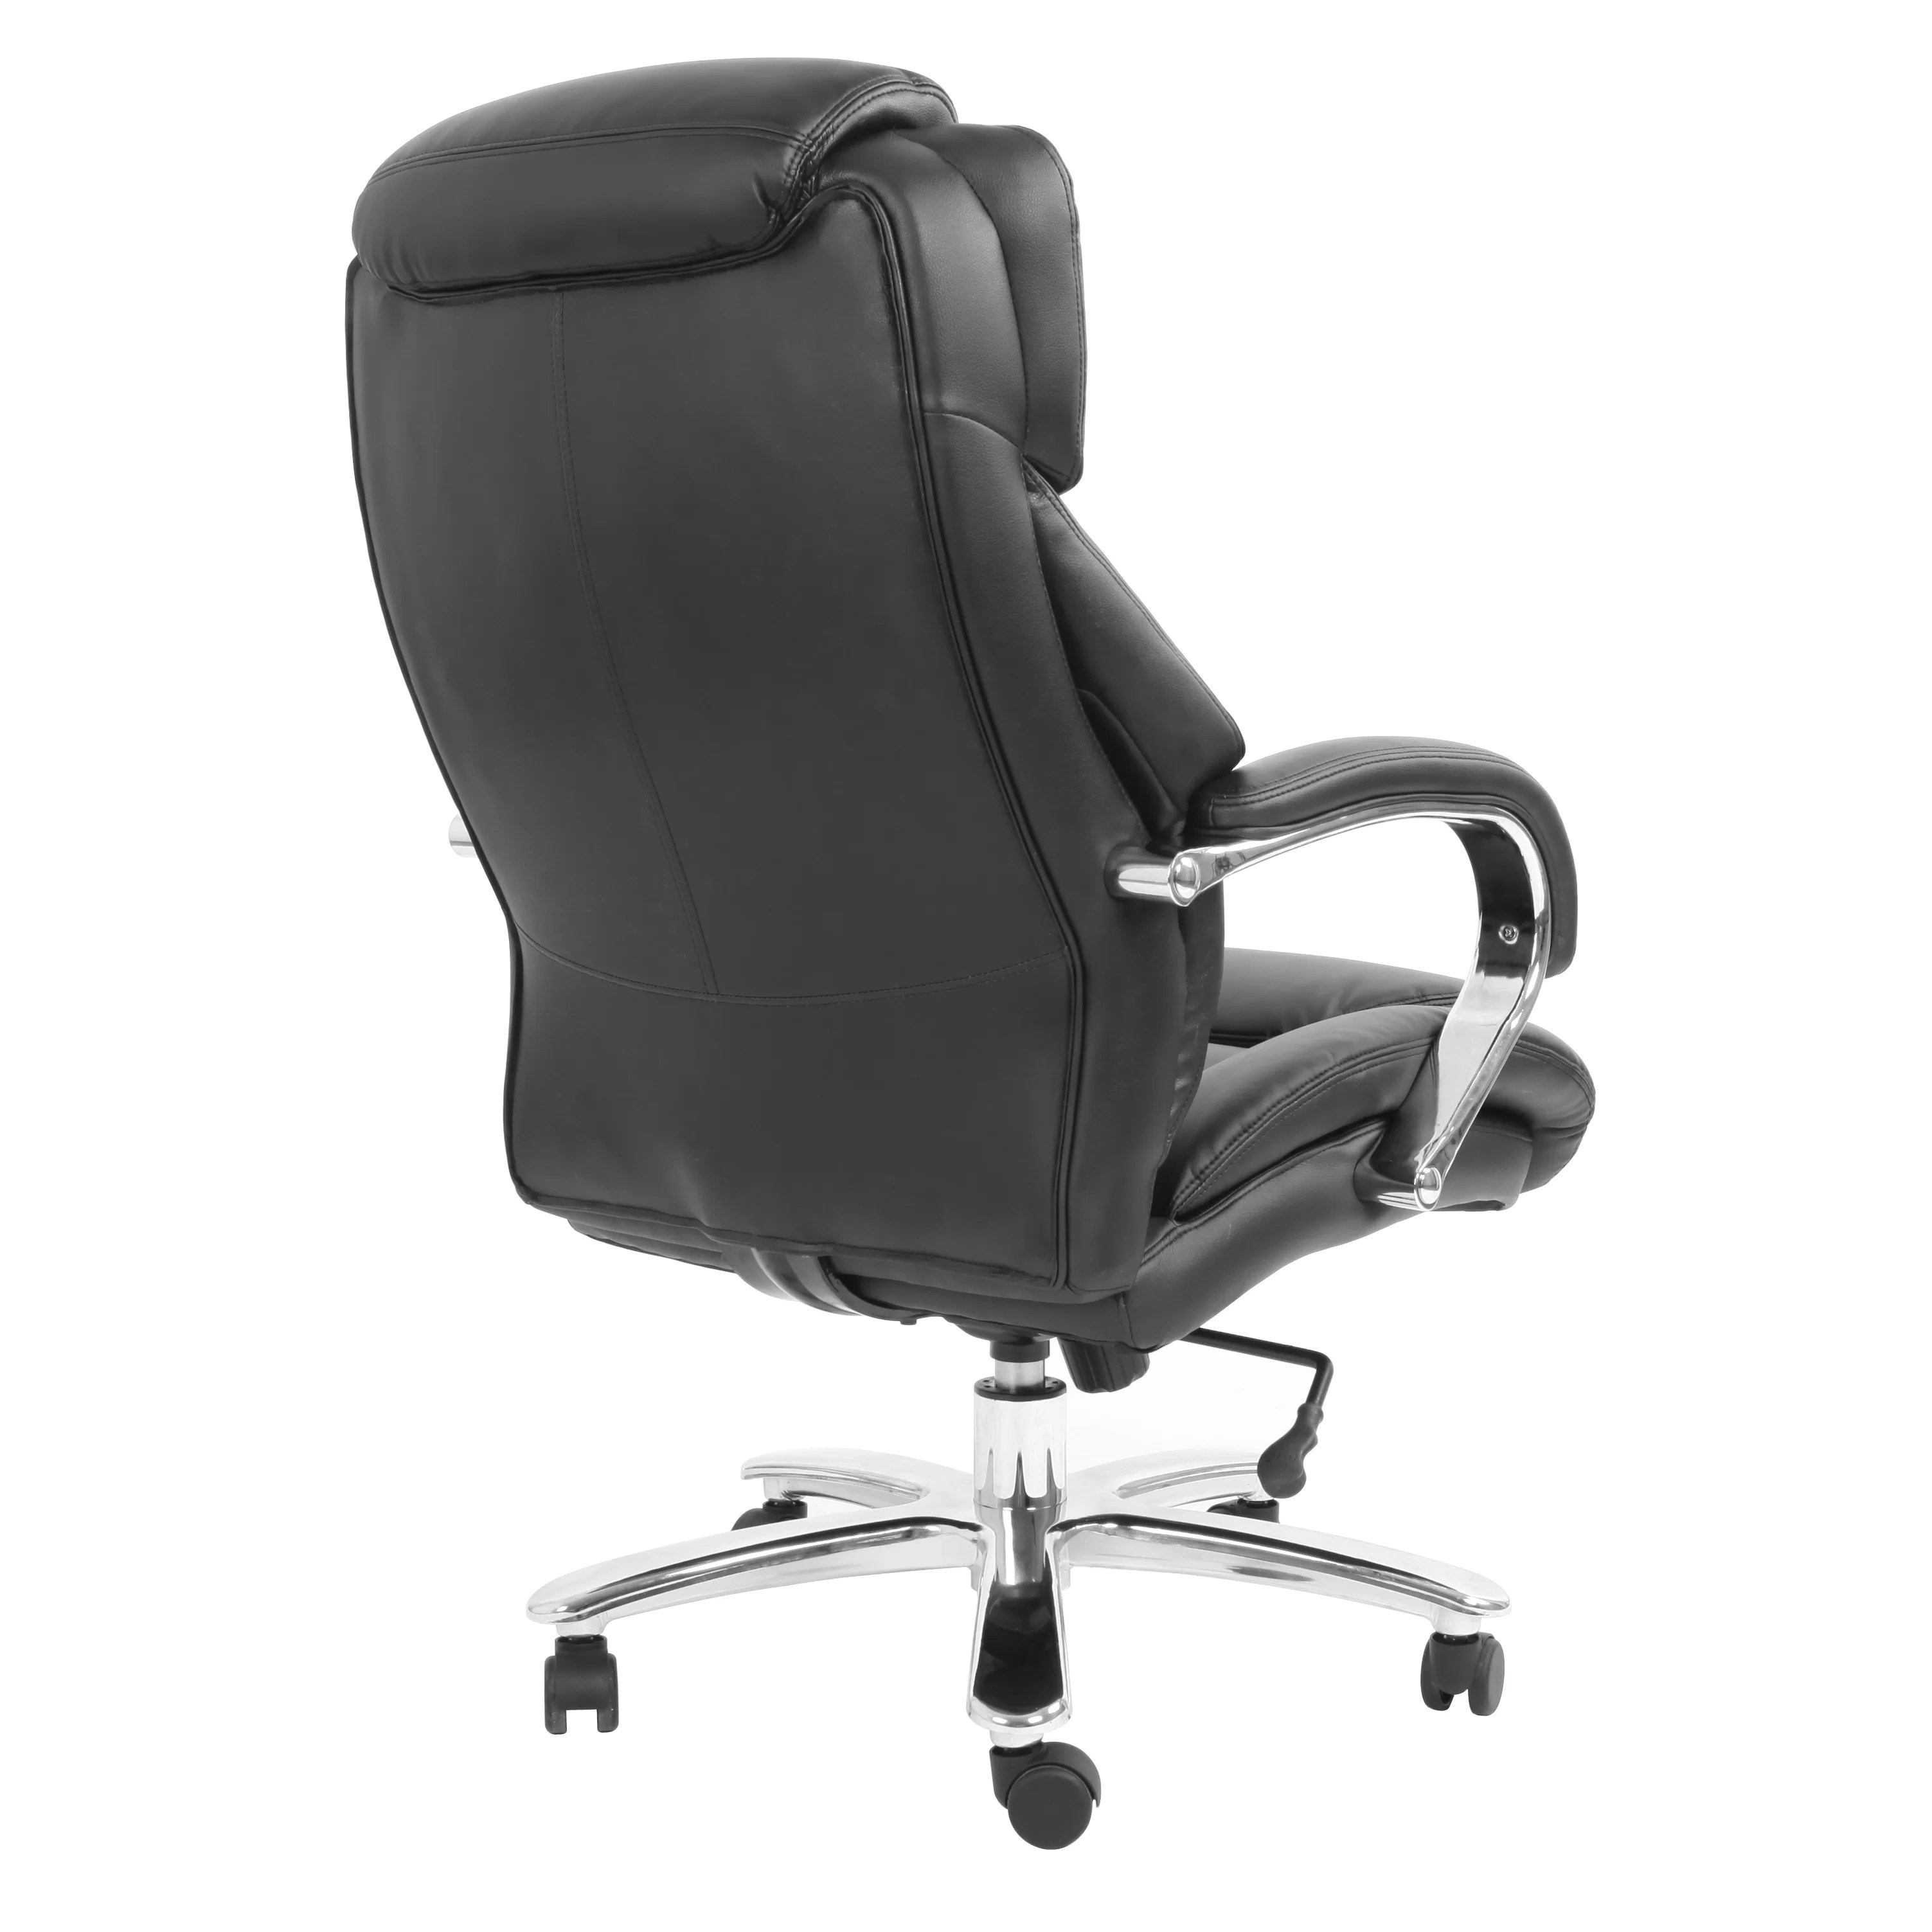 Tall Chair Comfort Products Admiral Iii Big And Tall High Back